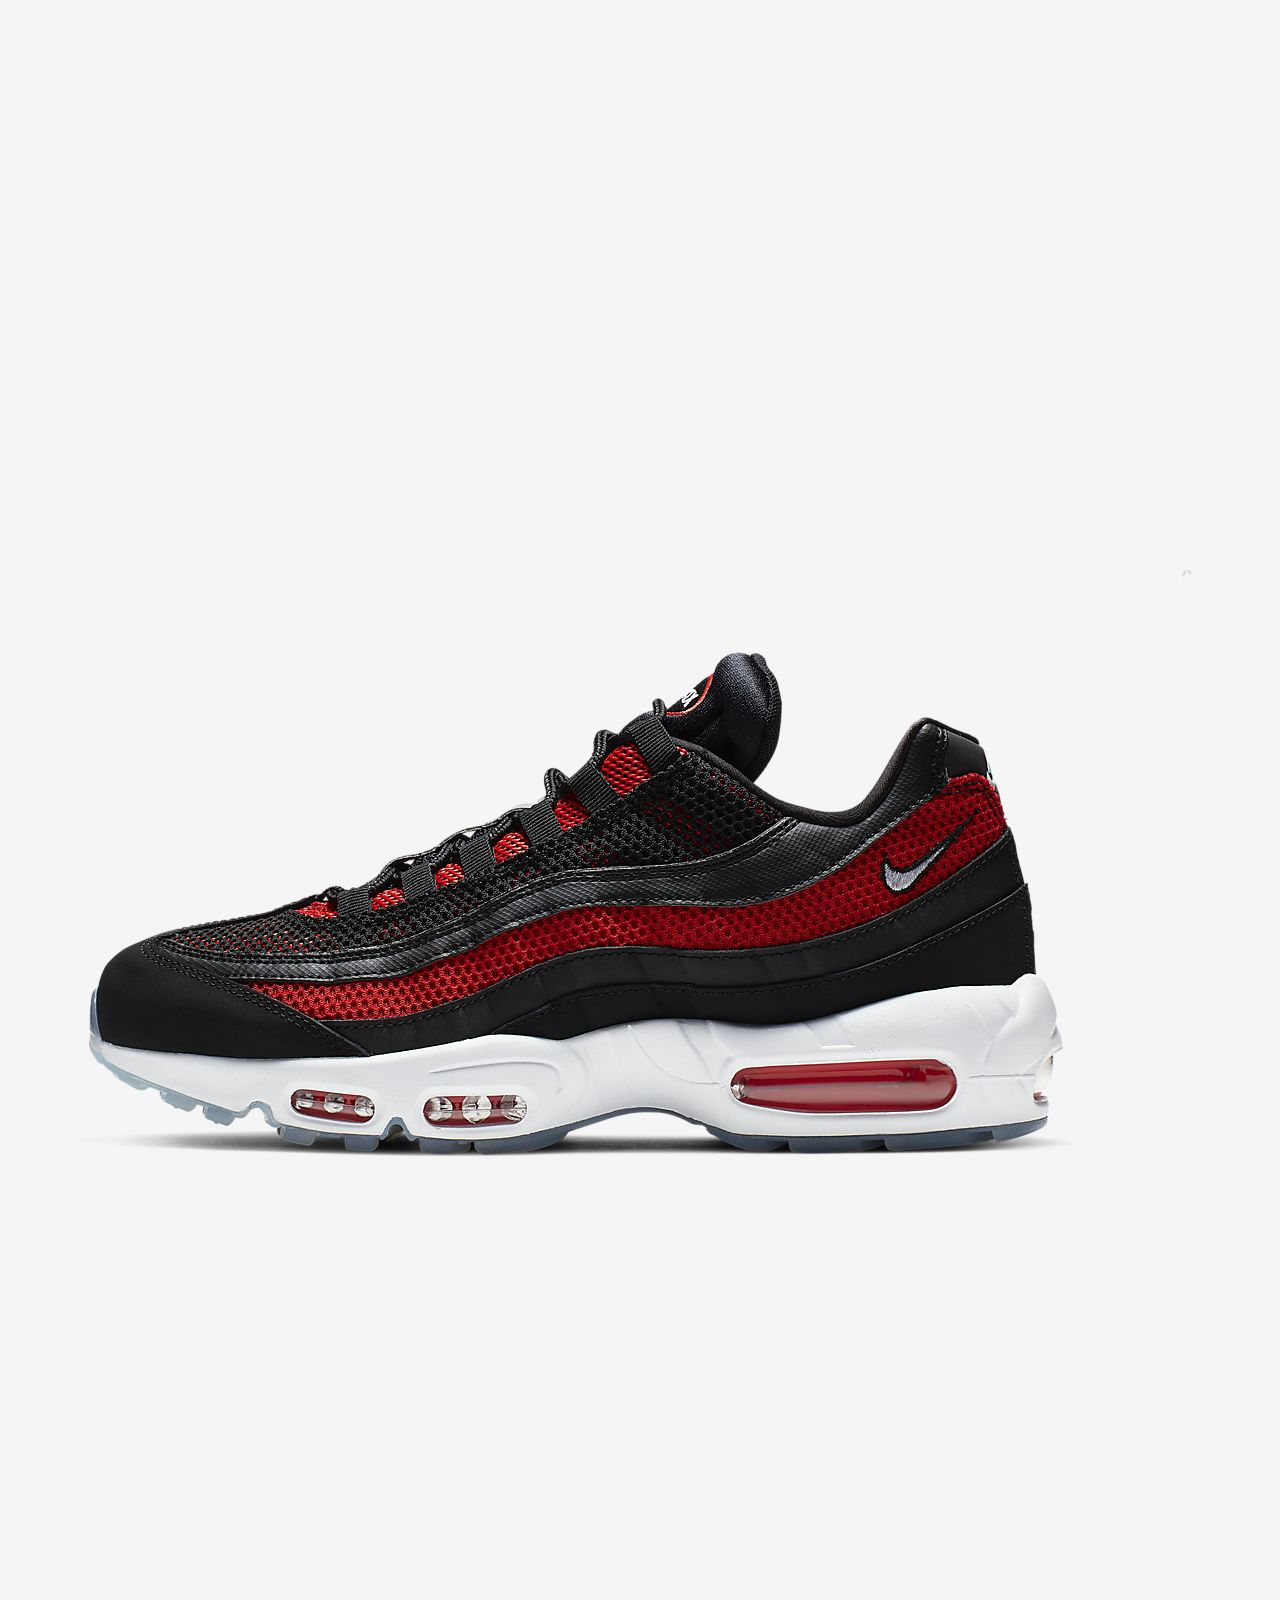 online retailer 6d6e7 28118 ... Nike Air Max 95 Essential Men s Shoe